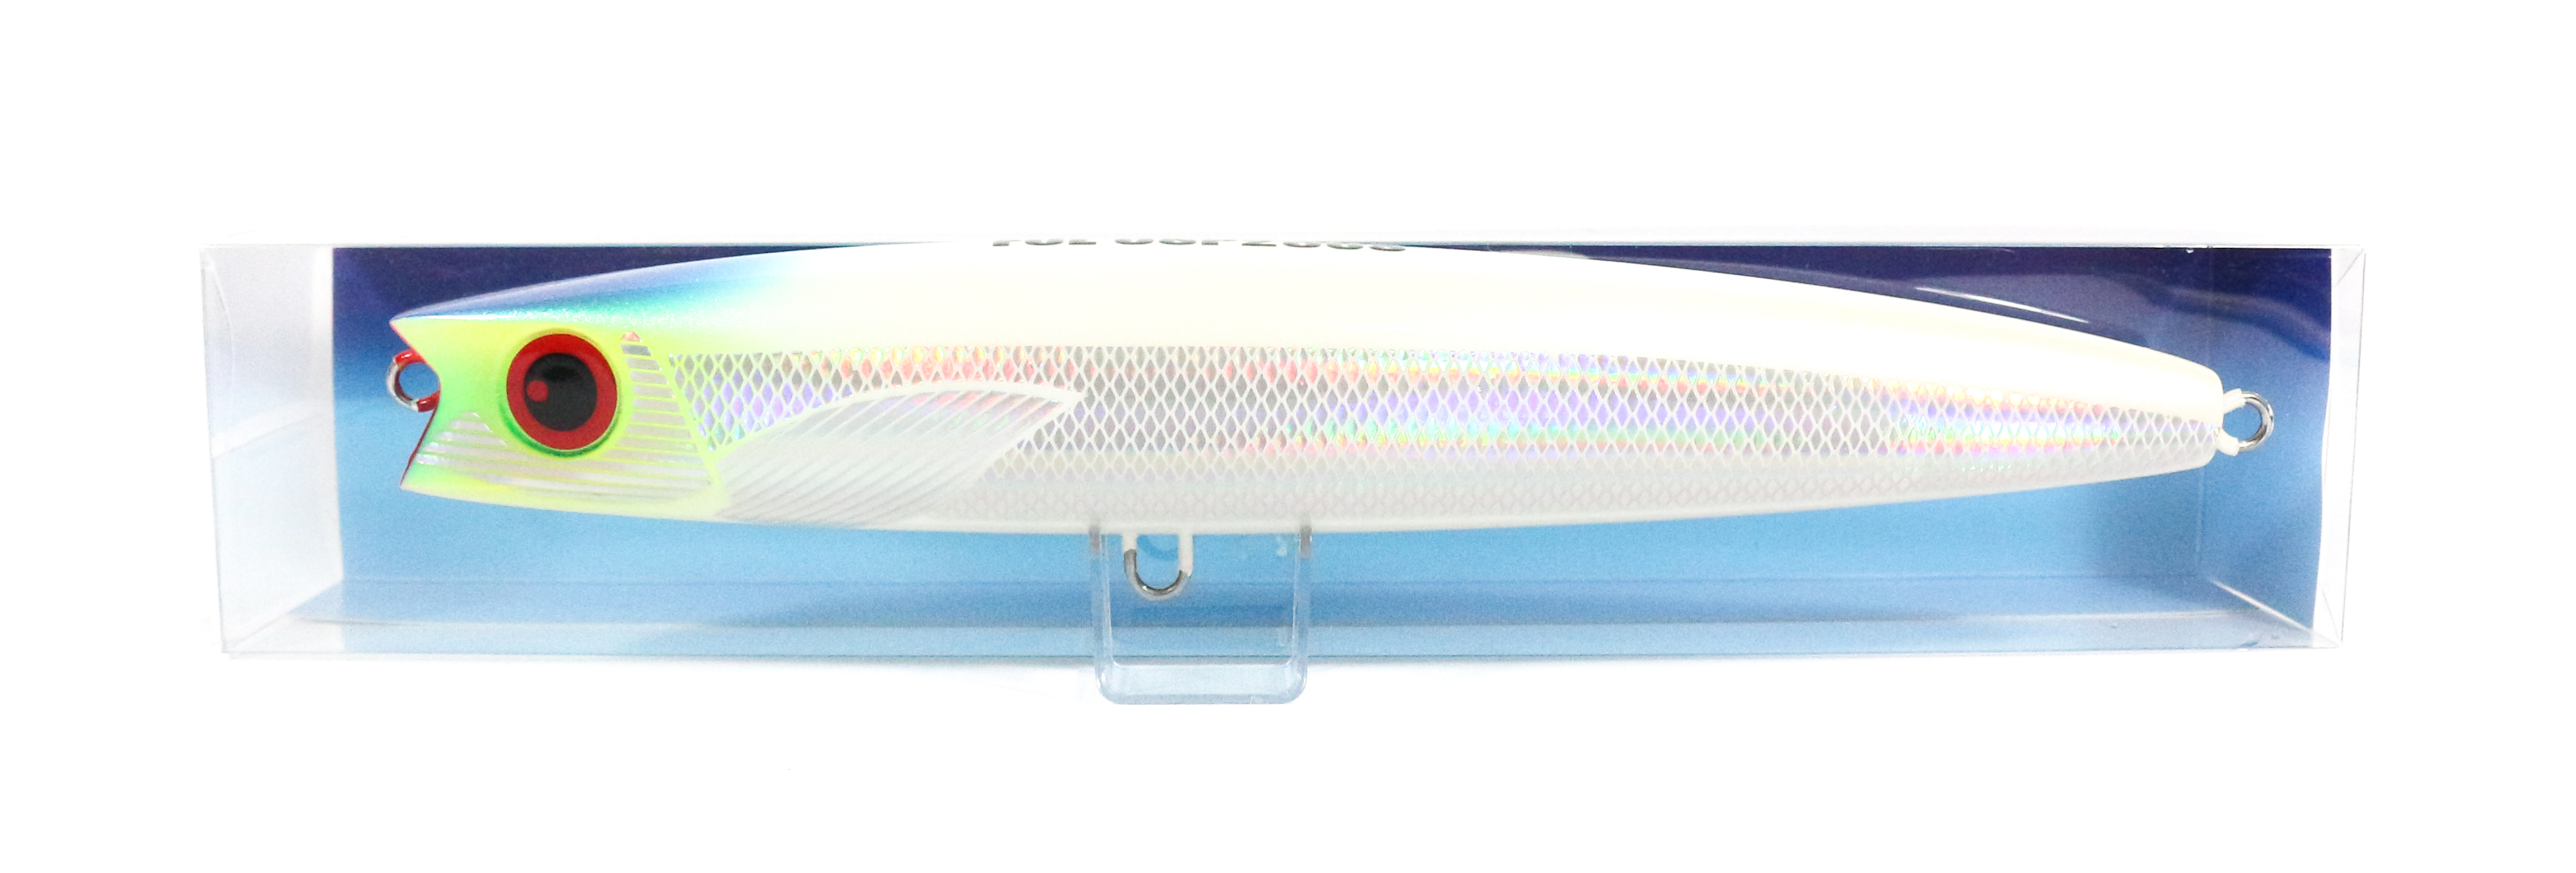 FCL Labo Stick Bait CSP 260S Sinking Lure 220 grams WP (8120)